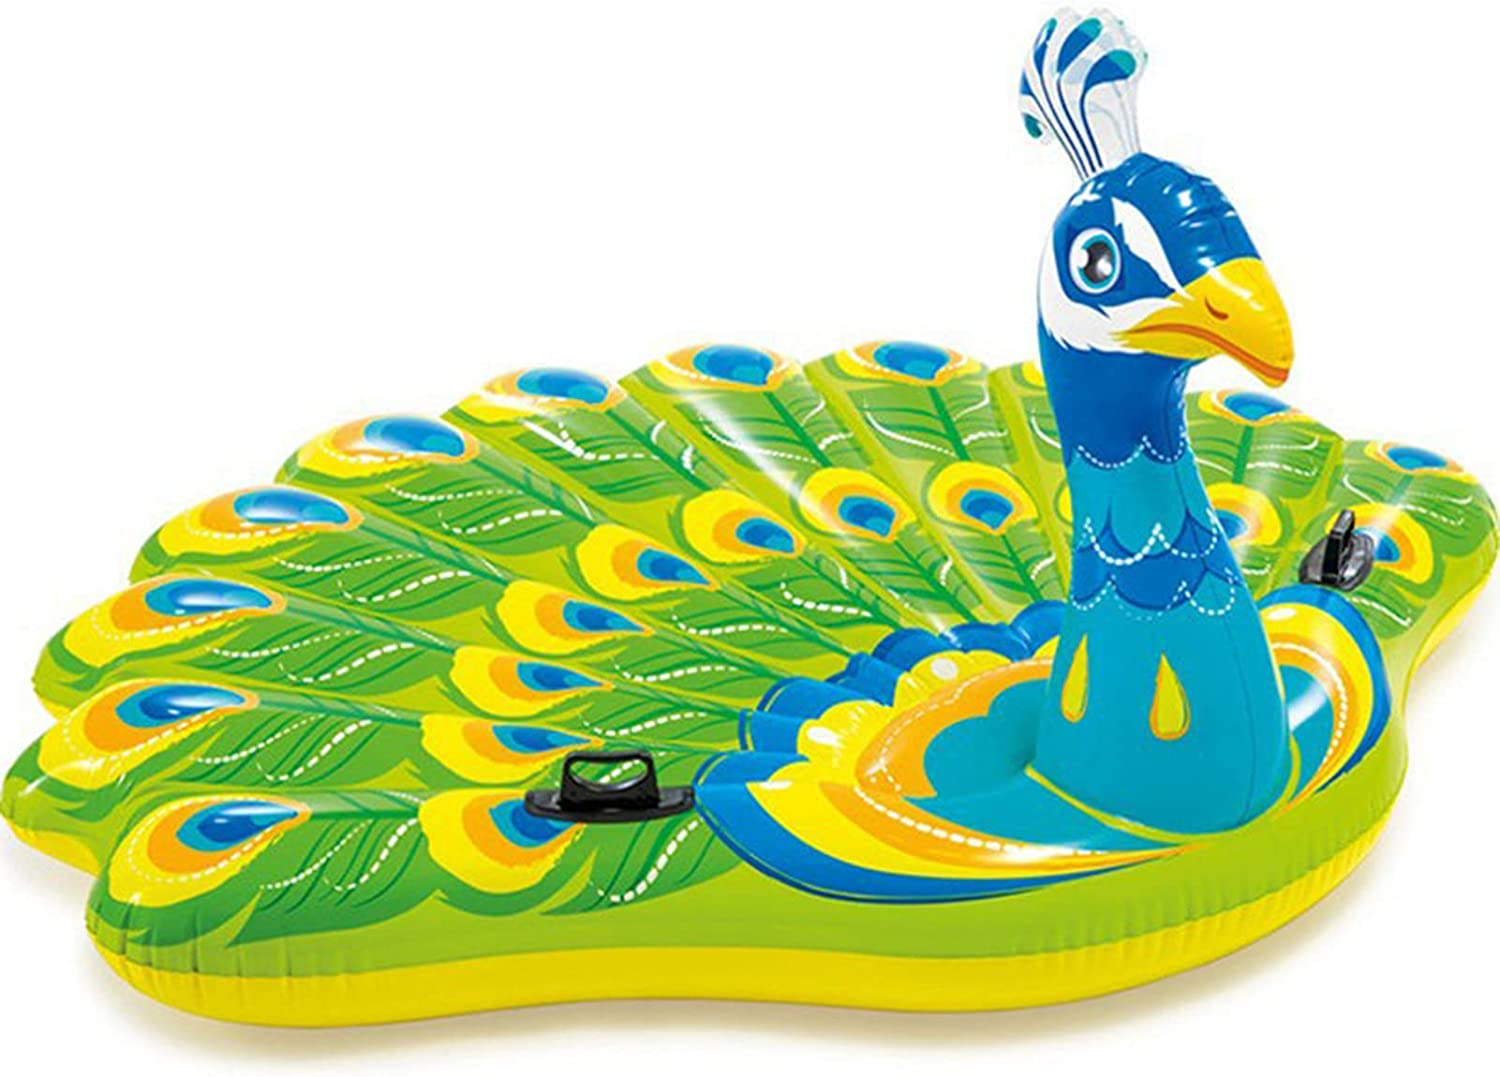 YHLO Giant Inflatable Peacock Pool Limited Special Price Beach Swimming Cheap SALE Start Summer Float P